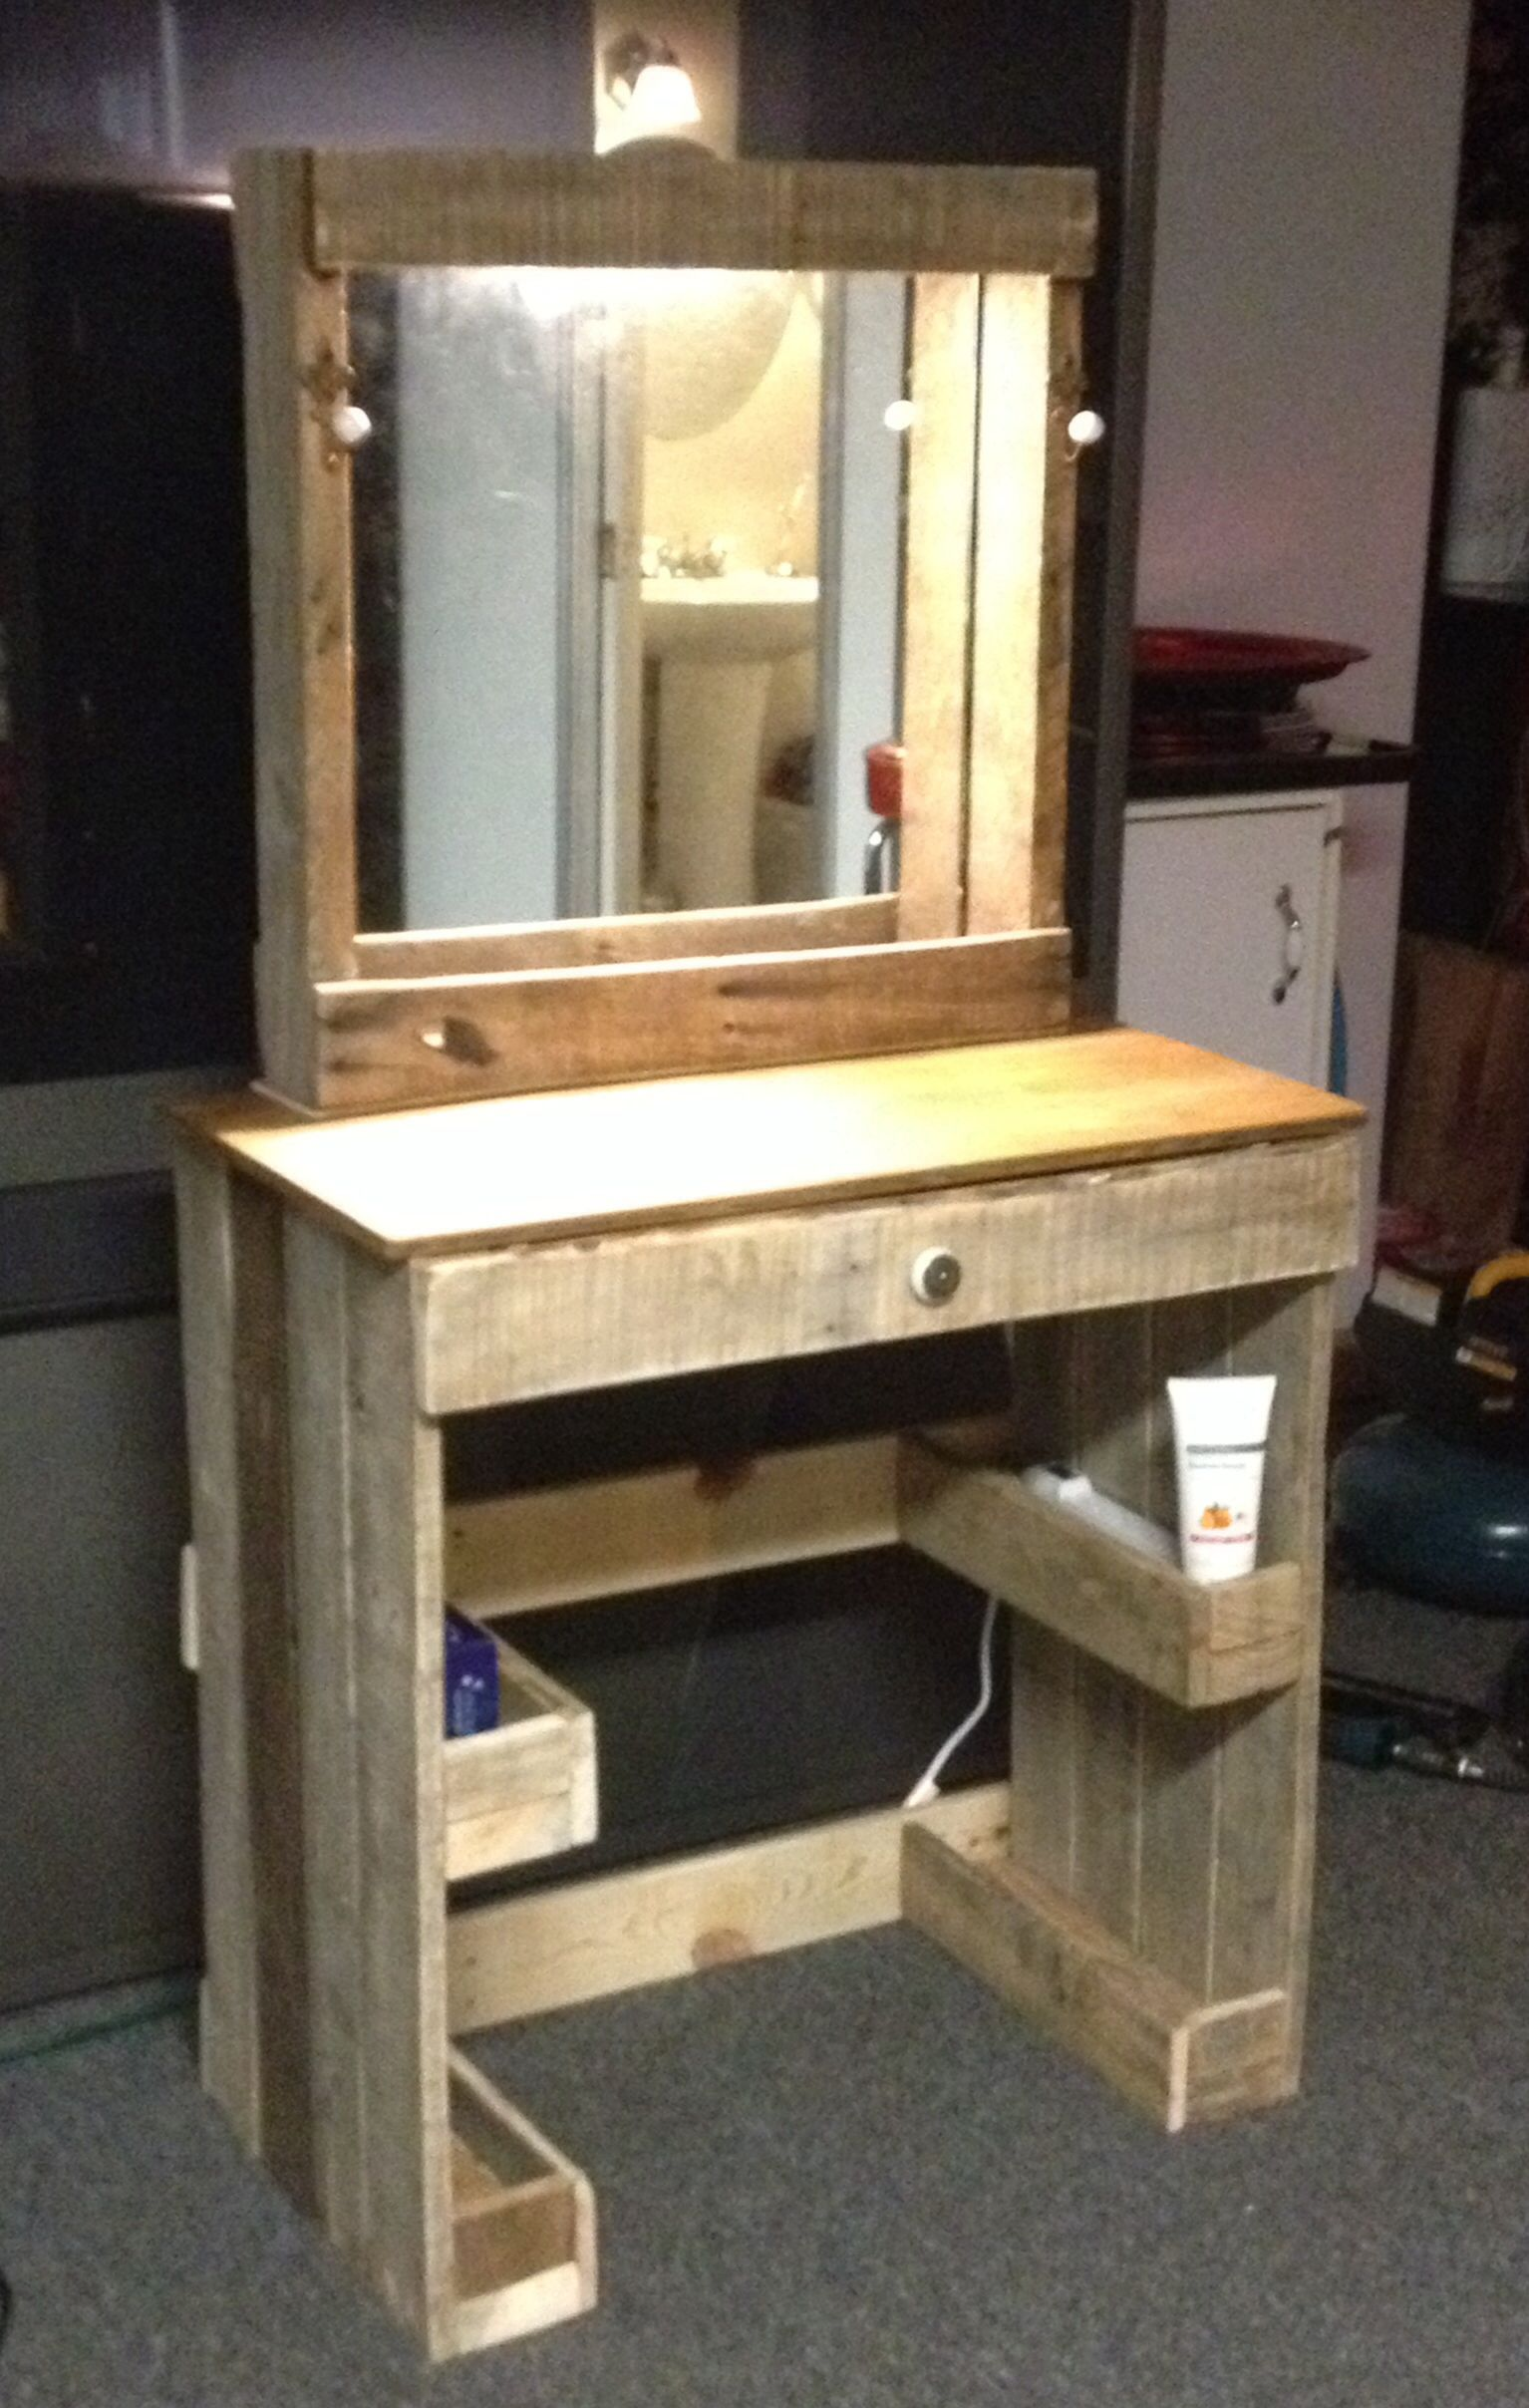 Wonderful Vanity With Lighted Make Up Mirror Made From Reclaimed Wood! Fun Project!